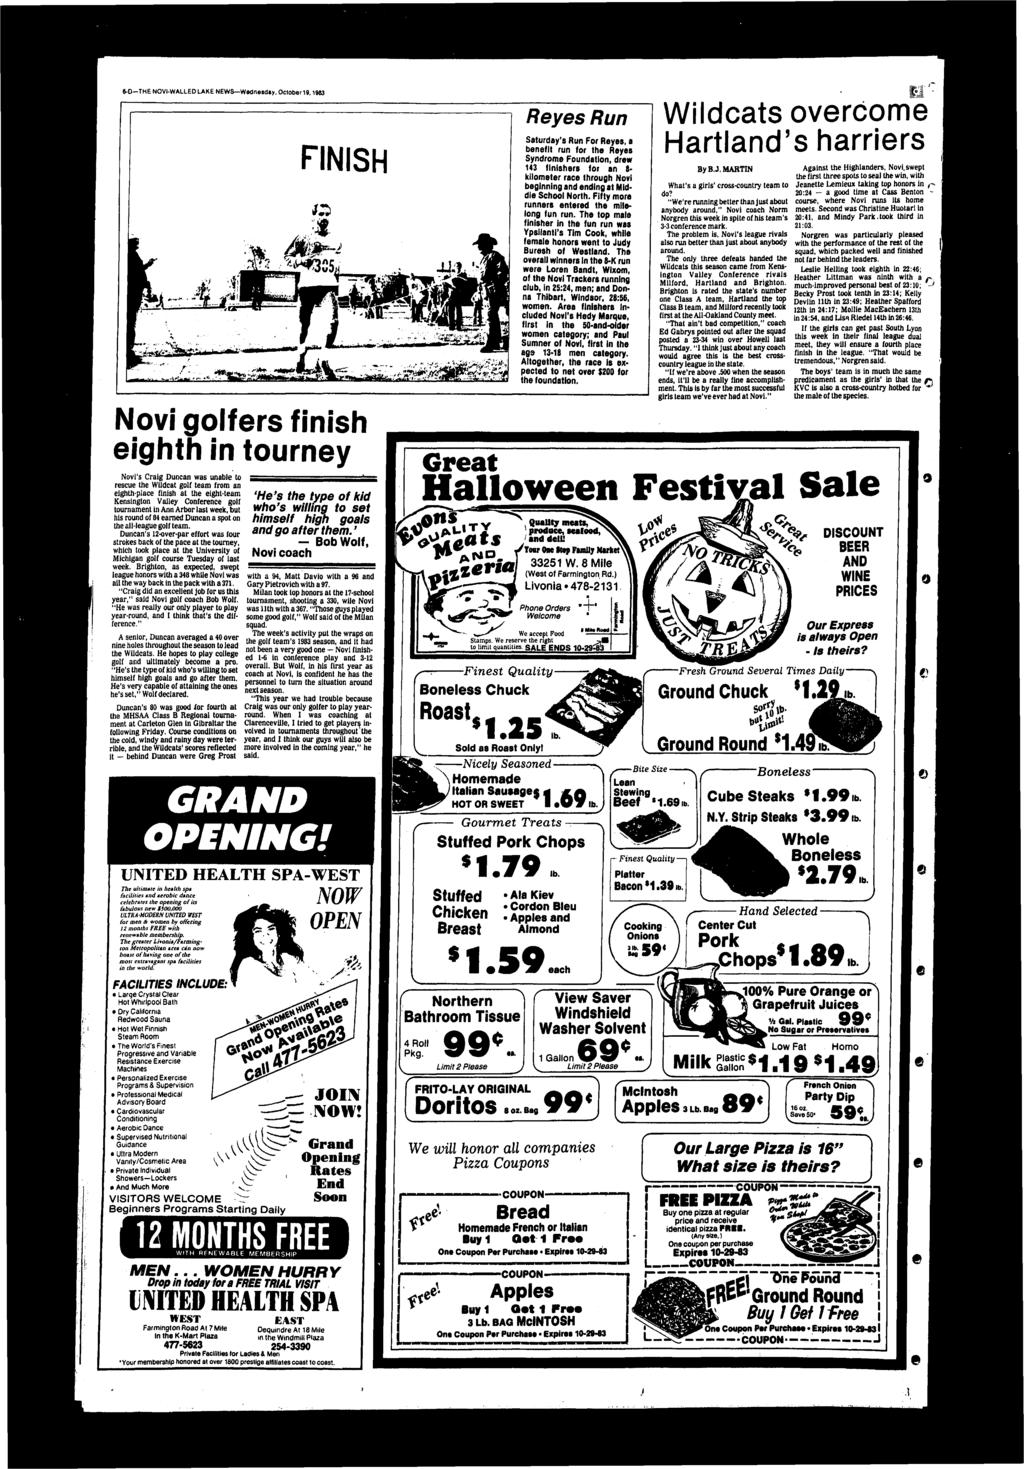 &-D-THE NOV-WALLED LAKE NEWS-W«dnesdBy, October 19,1983 FNSH Novi golfers finish eiglith in tourney Novi's Craig Duncan was unable to rescue the Wildcat golf team from an eighth-place finish at the